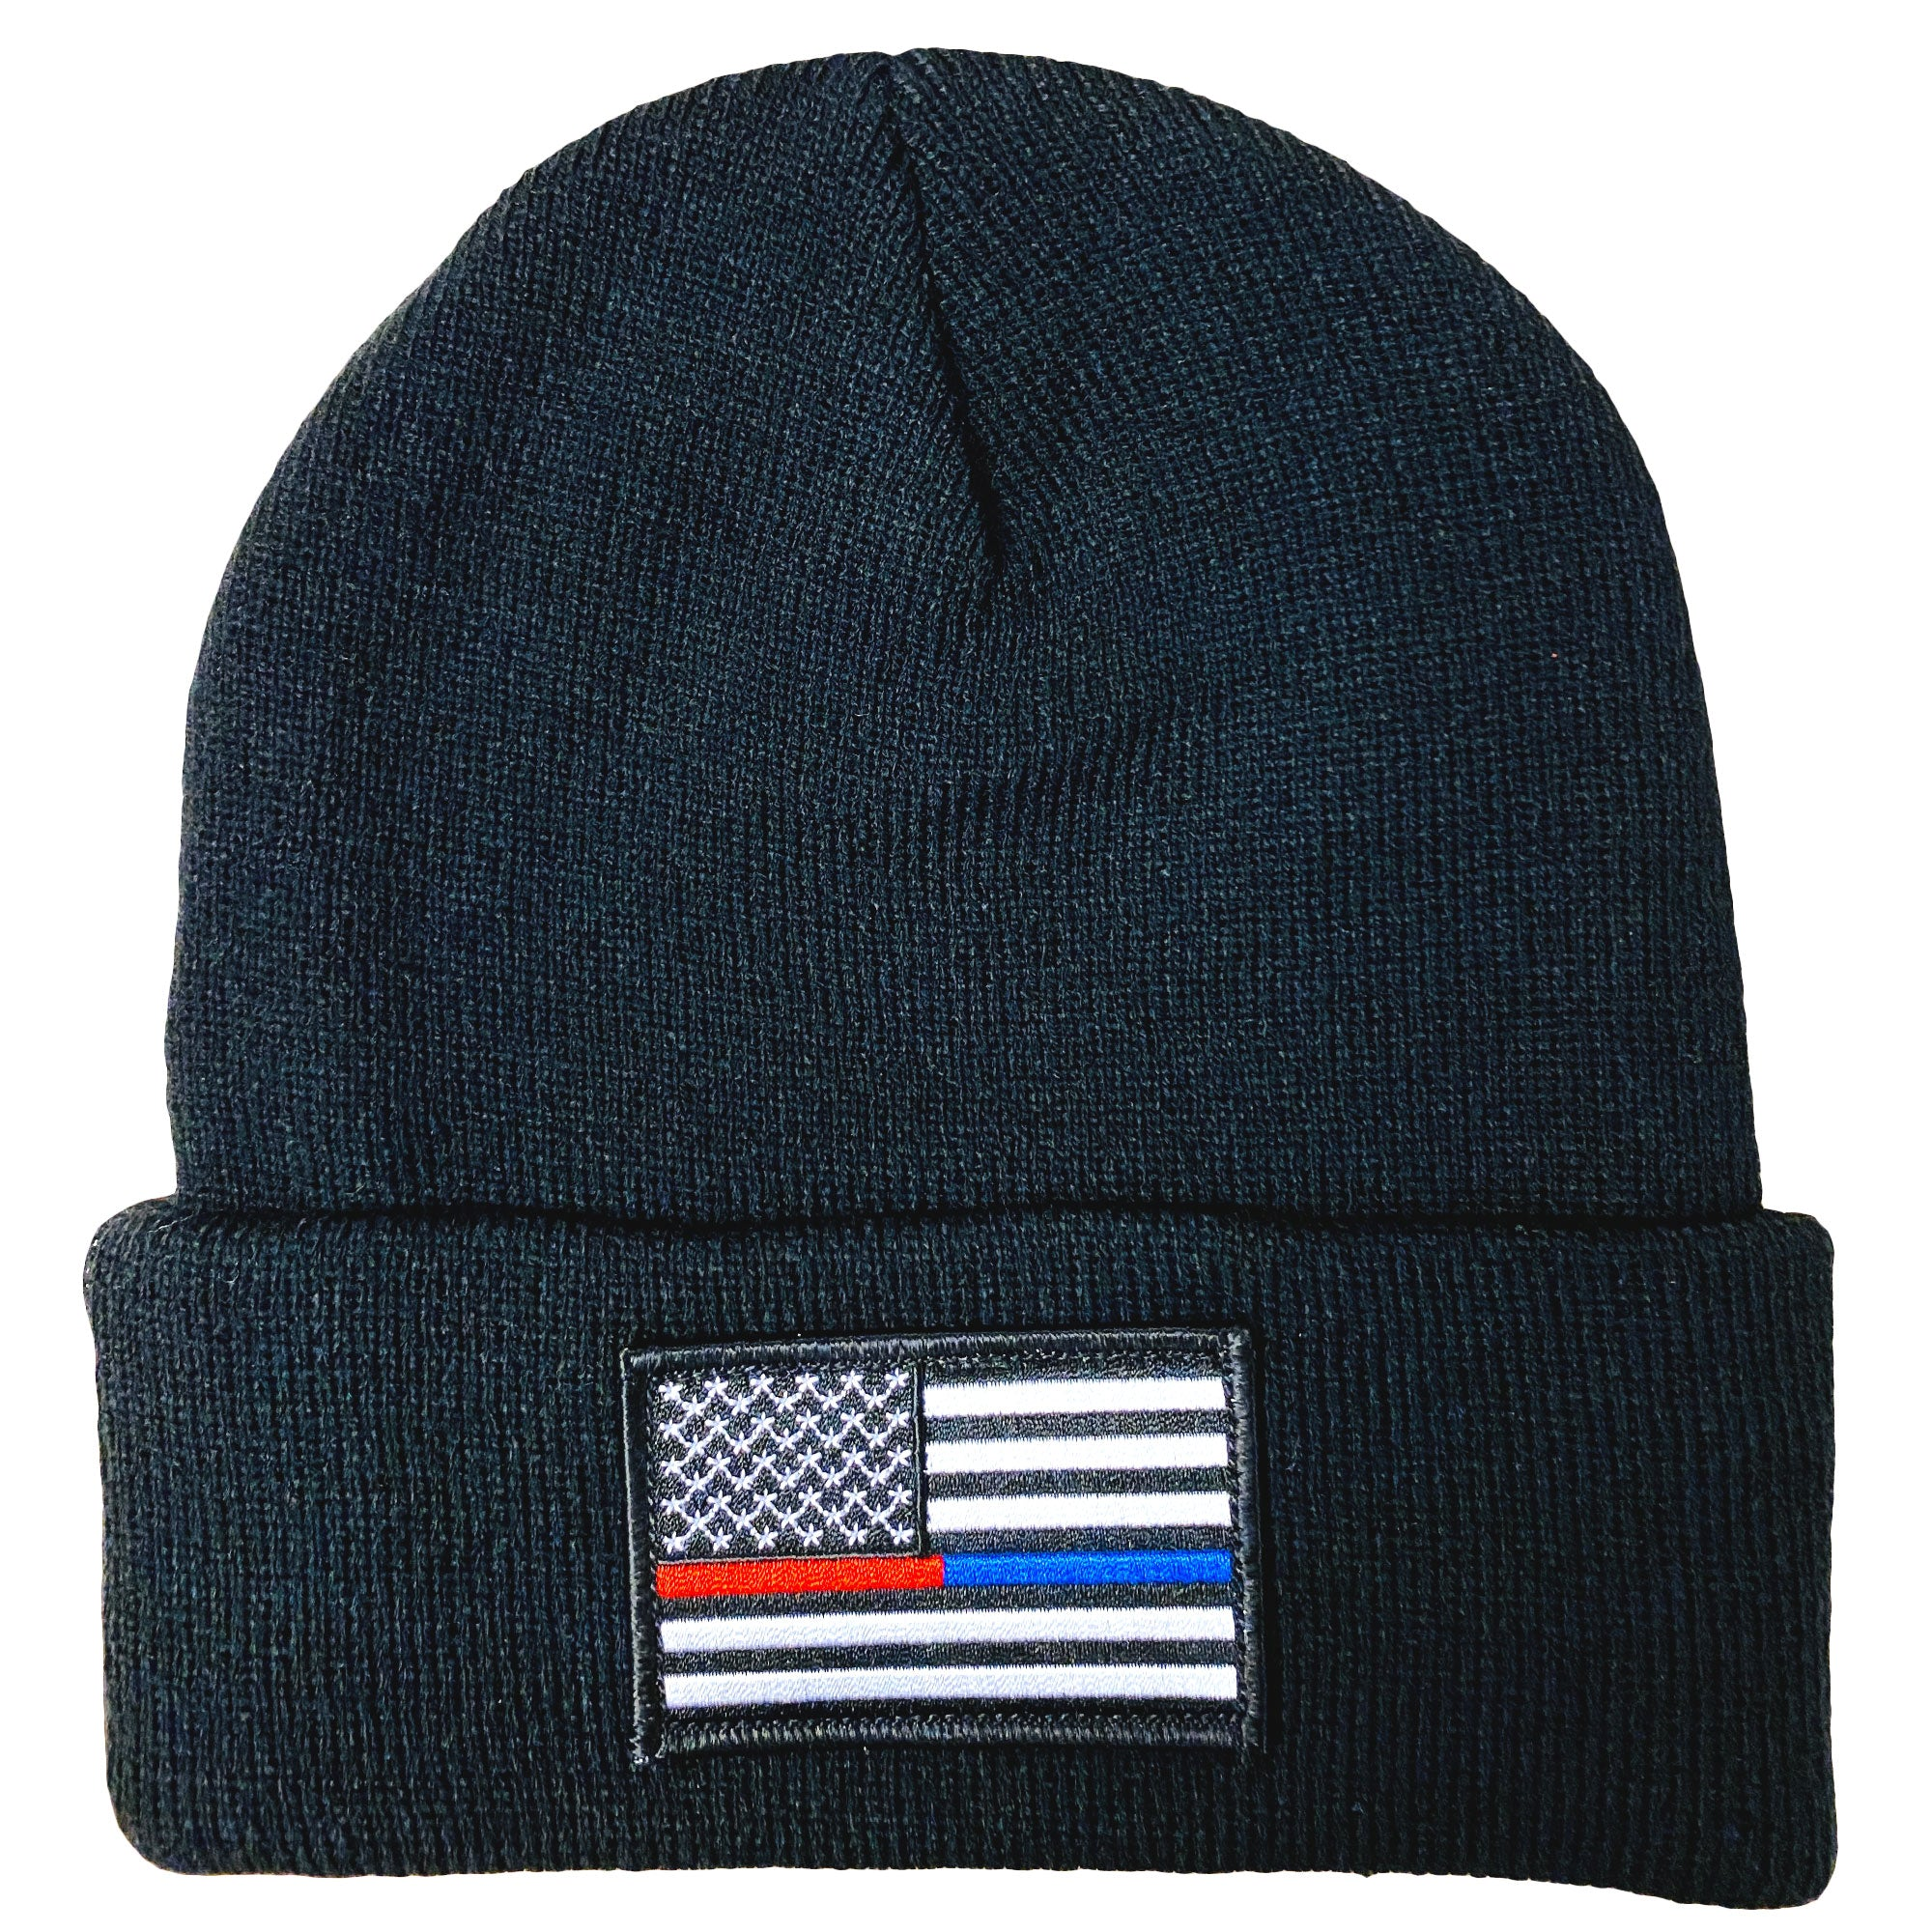 Hot Leathers Knit Beanie Flag Thin Red/Blue